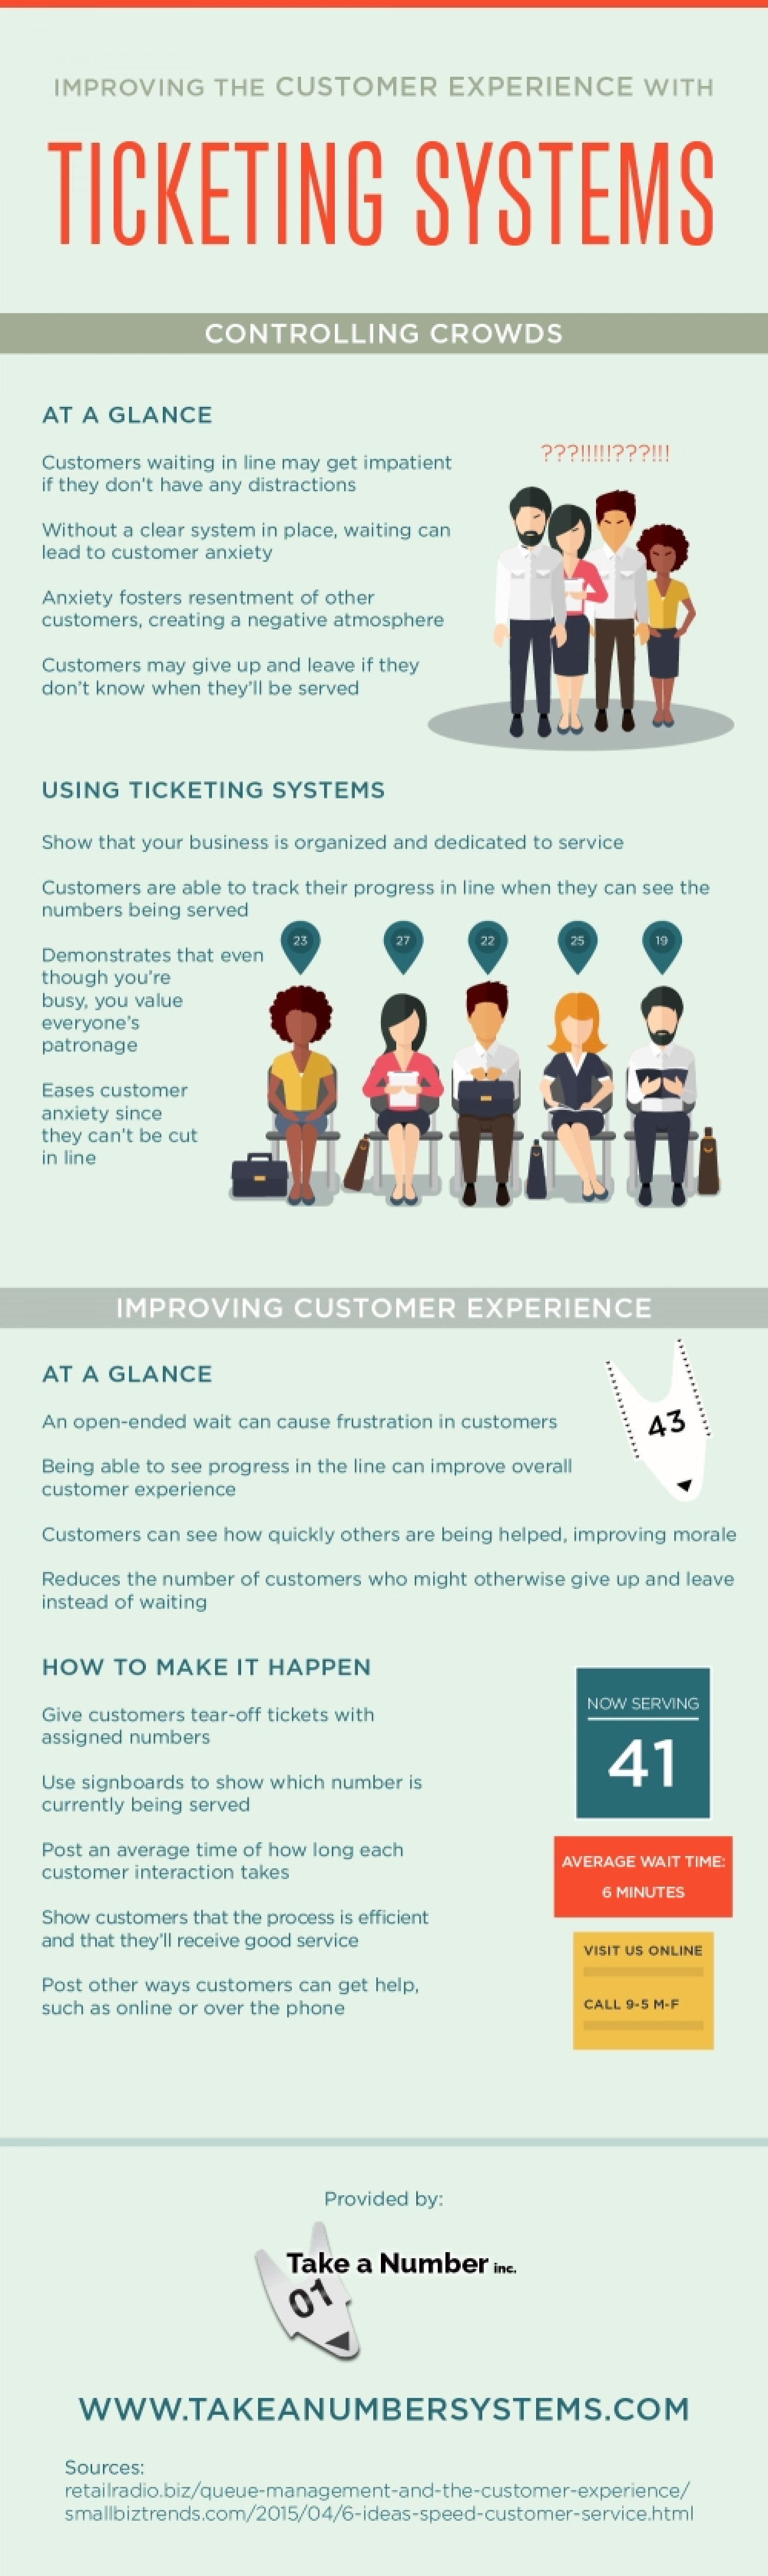 Improving the Customer Experience with Ticketing Systems Infographic